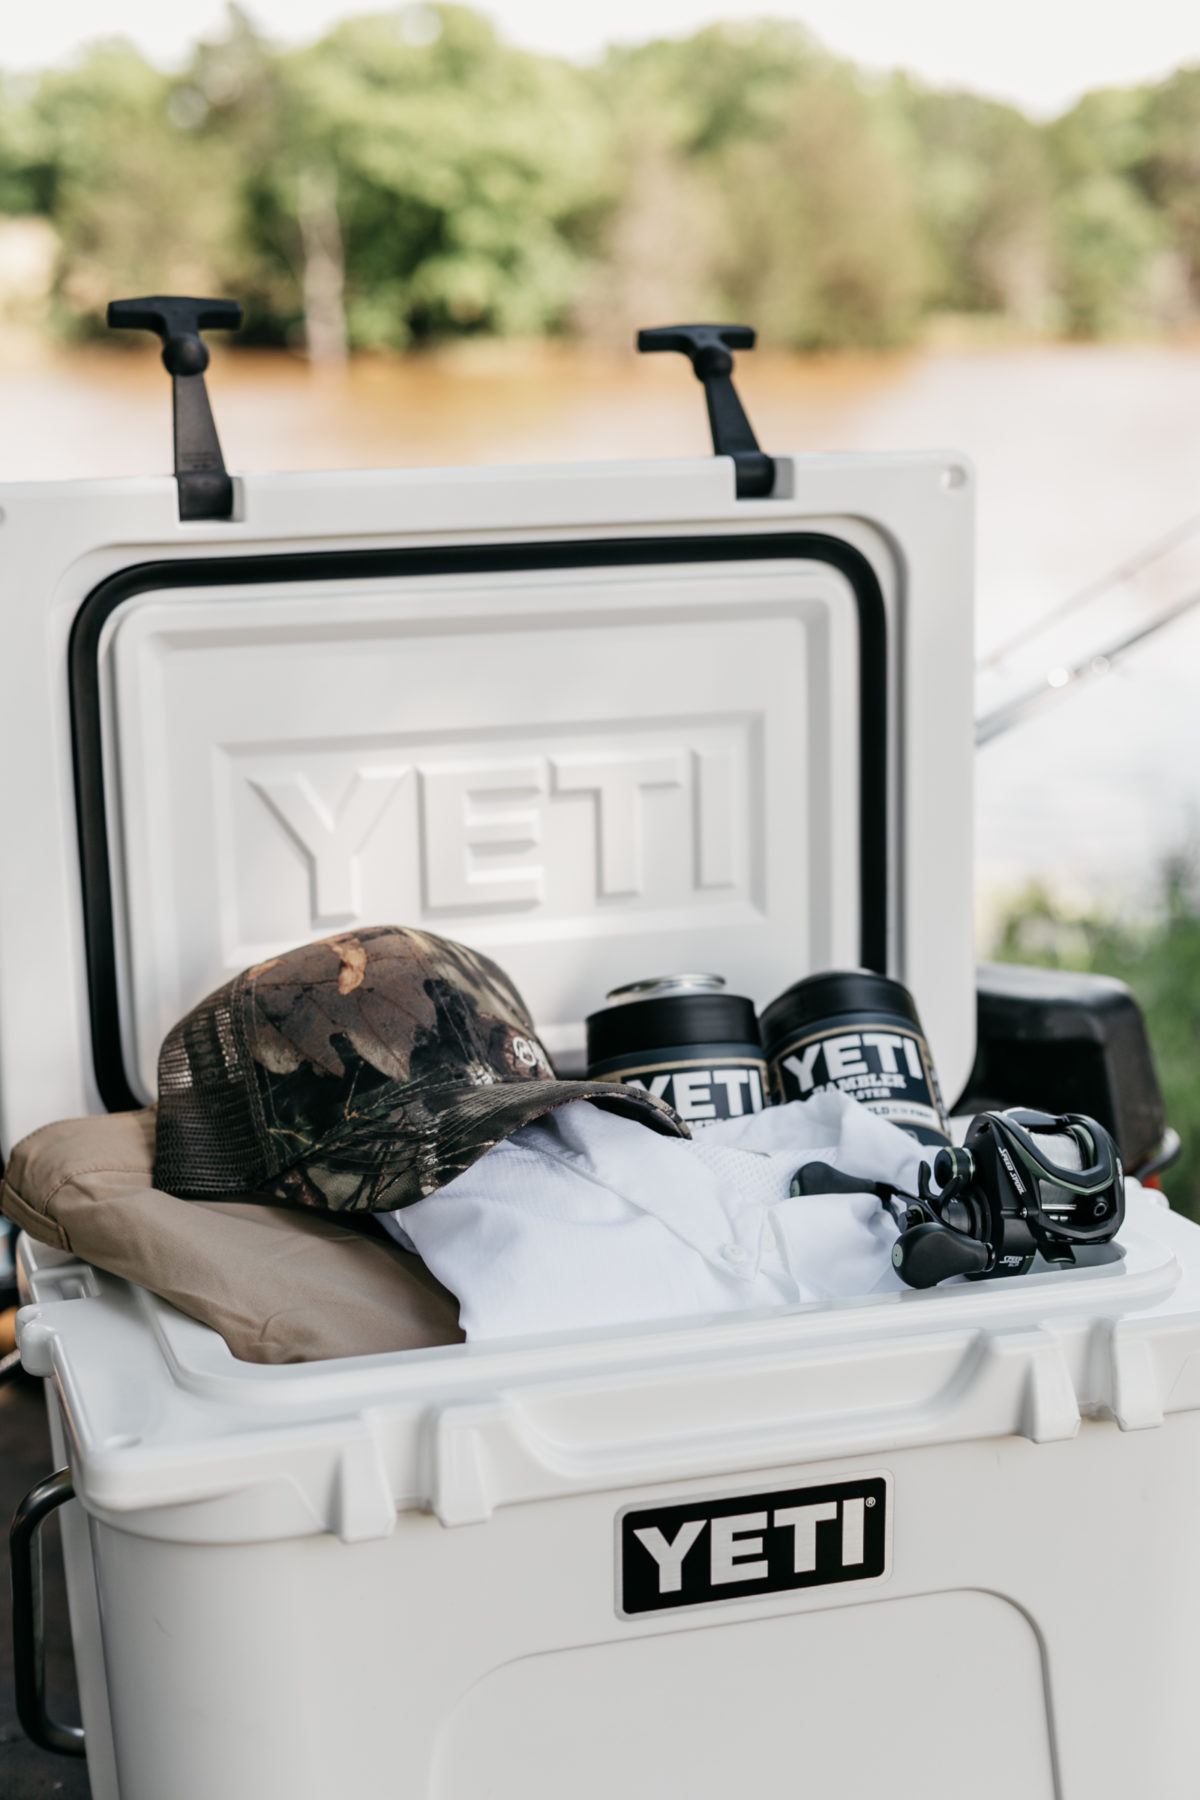 Yeti cooler and can holders